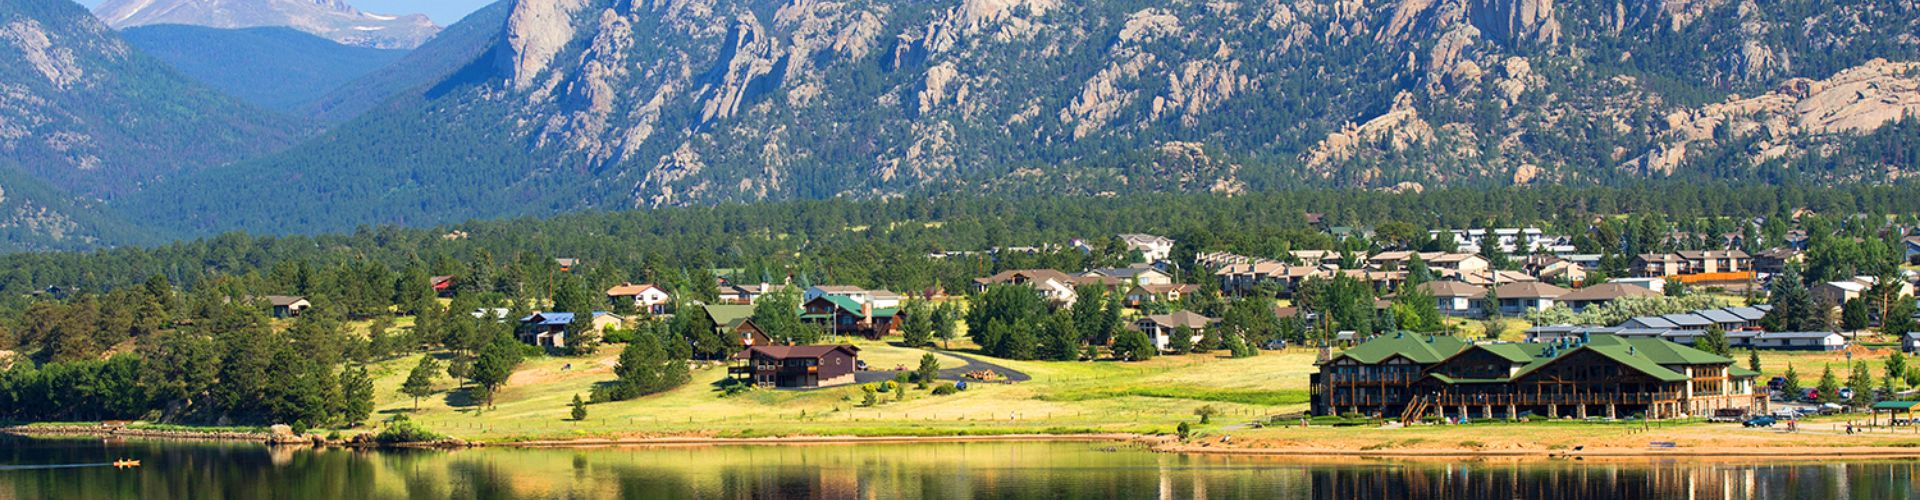 Estes Park Homes for Sale Photo 1